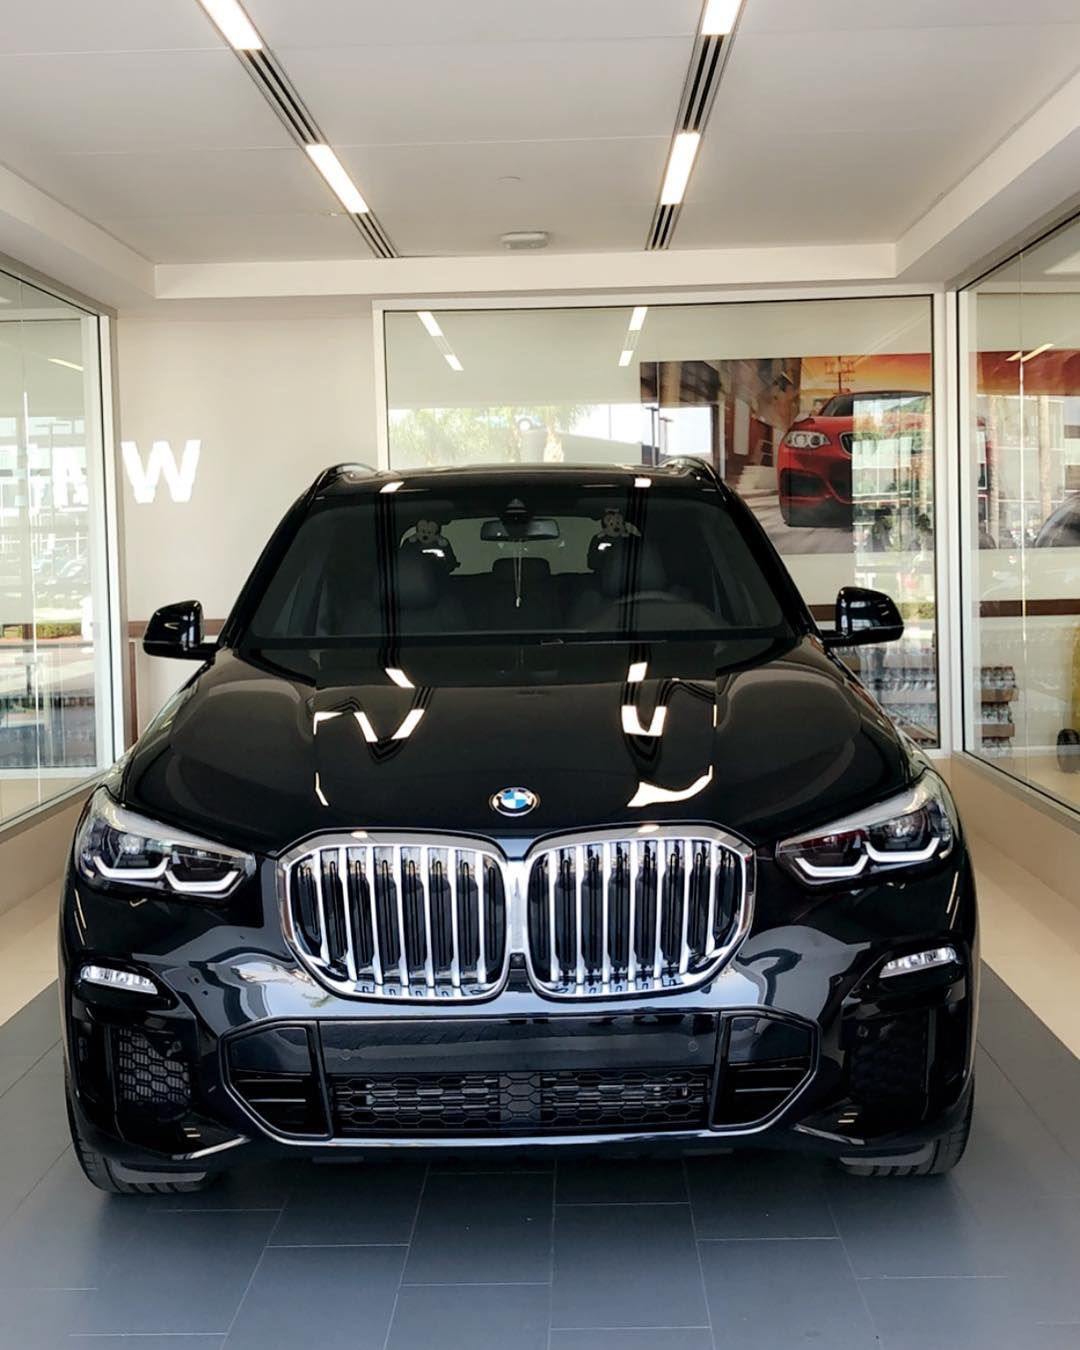 Bmw X7 Interior: The All New X7 G07 BmwX7 X7 X750i X740i Liv3lifem5